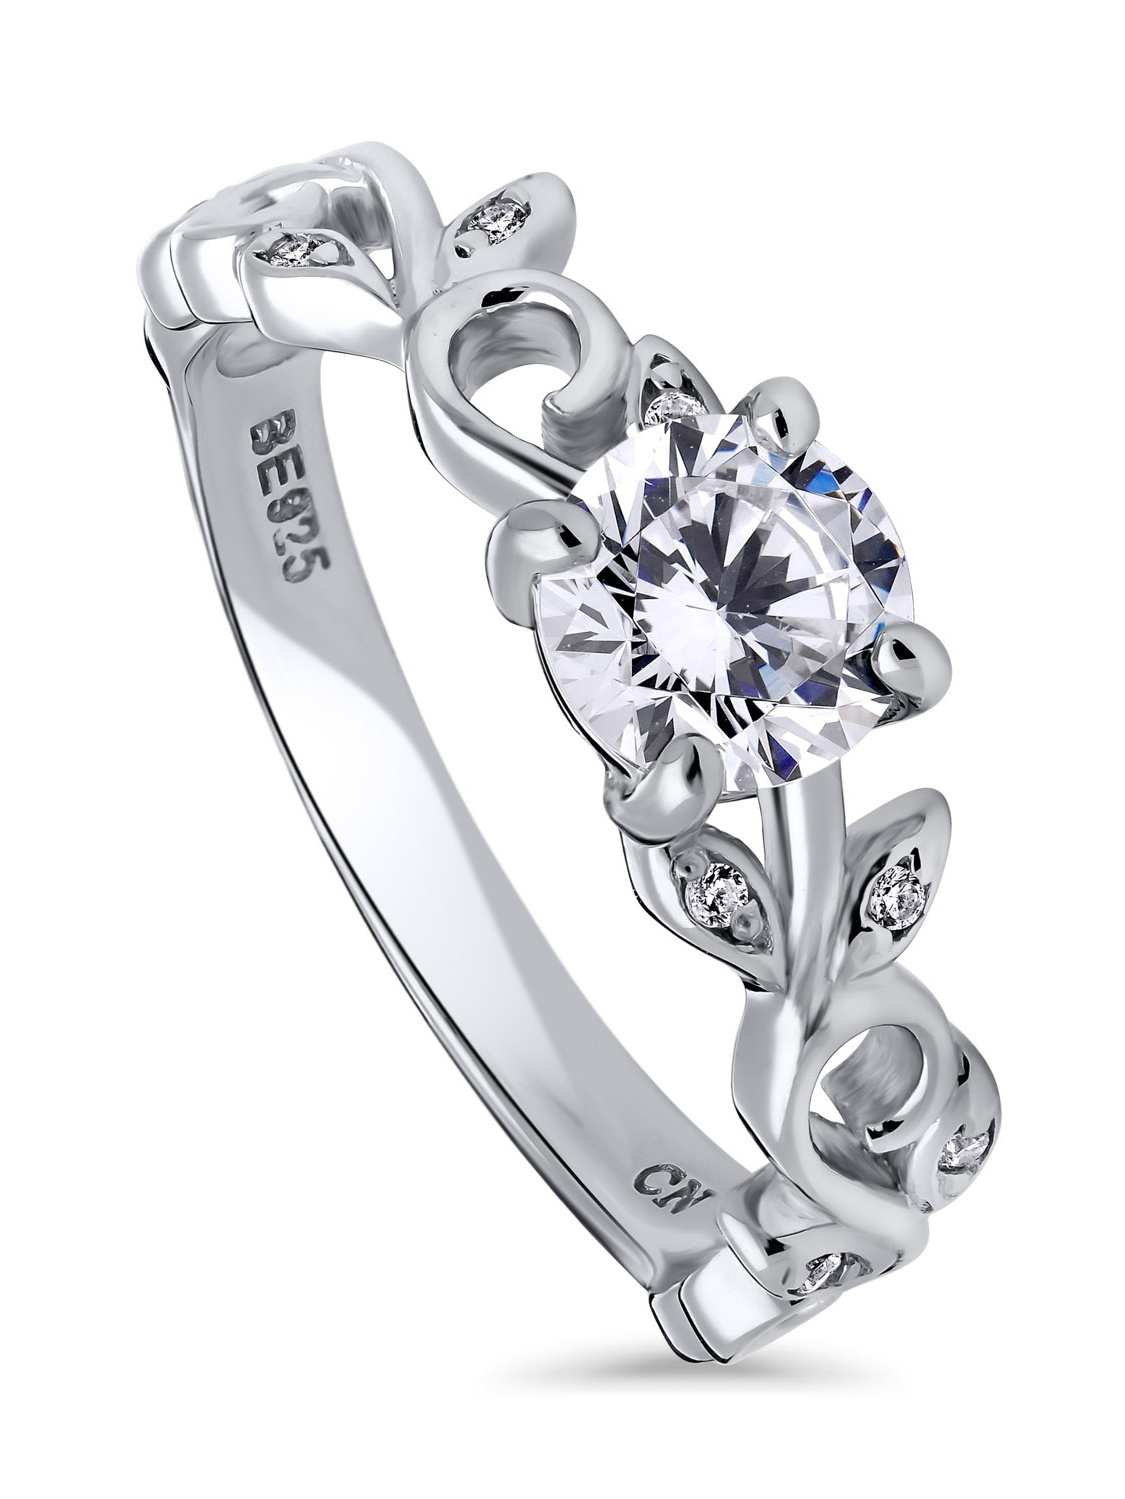 Rhodium Plated Sterling Silver Cubic Zirconia CZ Solitaire Leaf Filigree Promise Ring Size 10.5